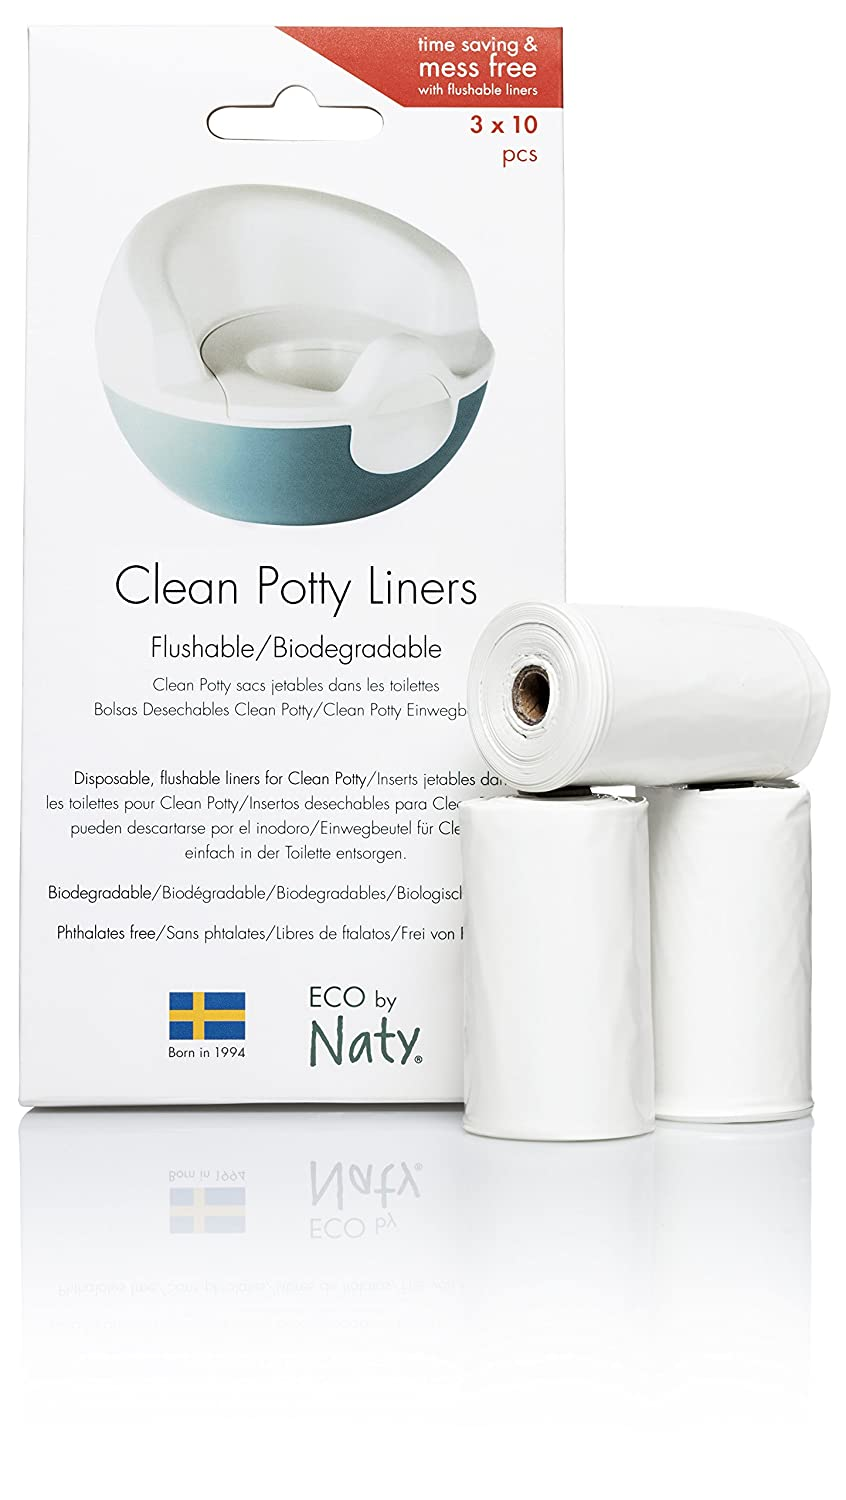 Eco by Naty Clean Potty Flushable Liners, 3 Rolls of 10 (30 Count)